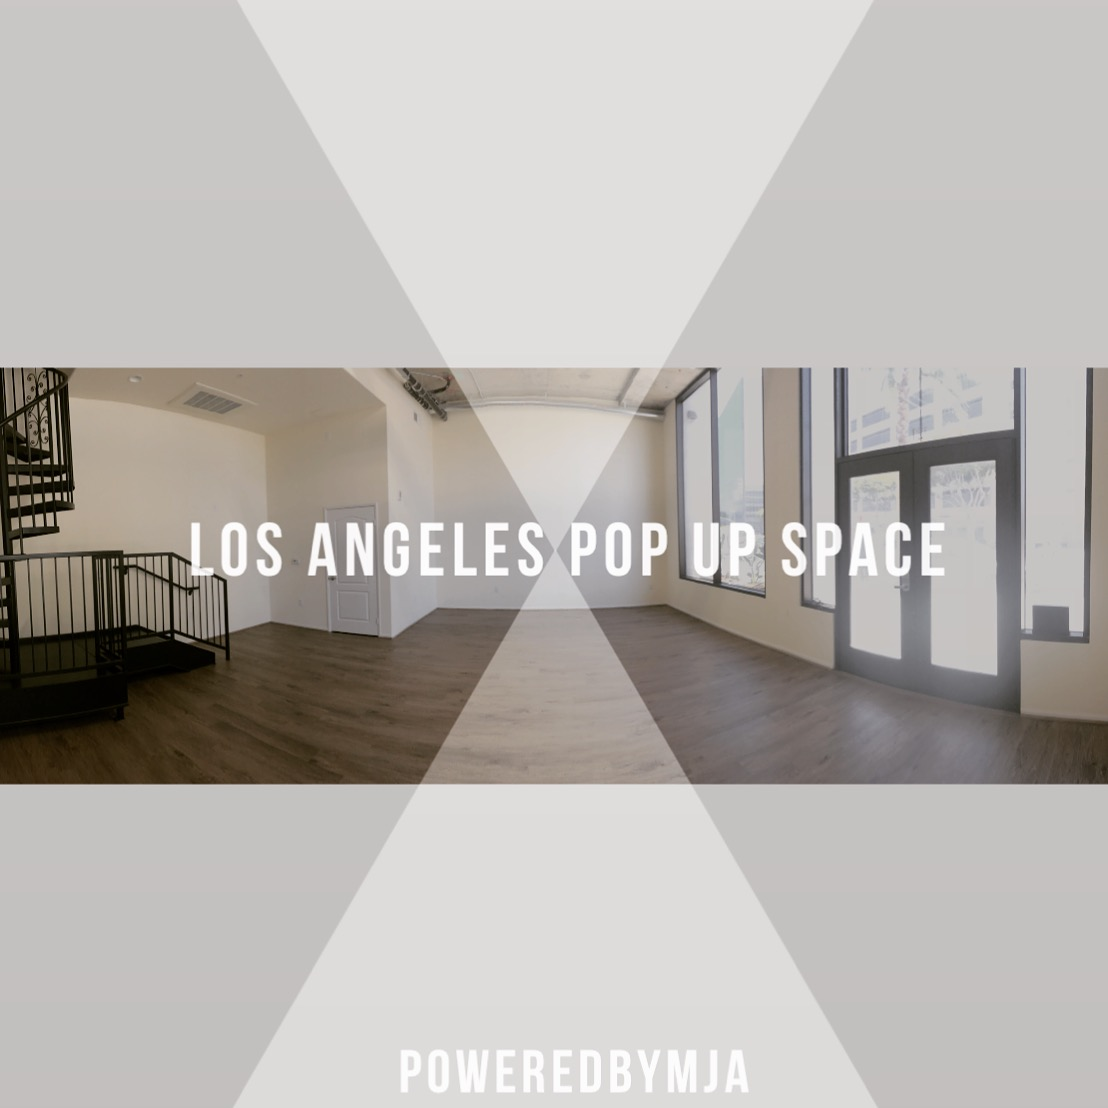 DTLA Creative Space - Are you an ARTist or Brand looking to expand into the West Coast Market.Looking for a Showroom Agency to represent you and open up New Accounts via Wholesale, Product Placement and Content Development.PoweredbyMJA DTLA Creative Space located in downtown Los Angeles, in the Fashion District offers Private Retail, Stylist Rentals and Wholesale Appointments.$1,000 Three Month Pop up SpecialIncludes a 1 day Special Pop-up EventJanuary - March 2019Special Rate Deadline is November 15, 2018Inventory must be received by December 21, 2018Click Here to Purchase